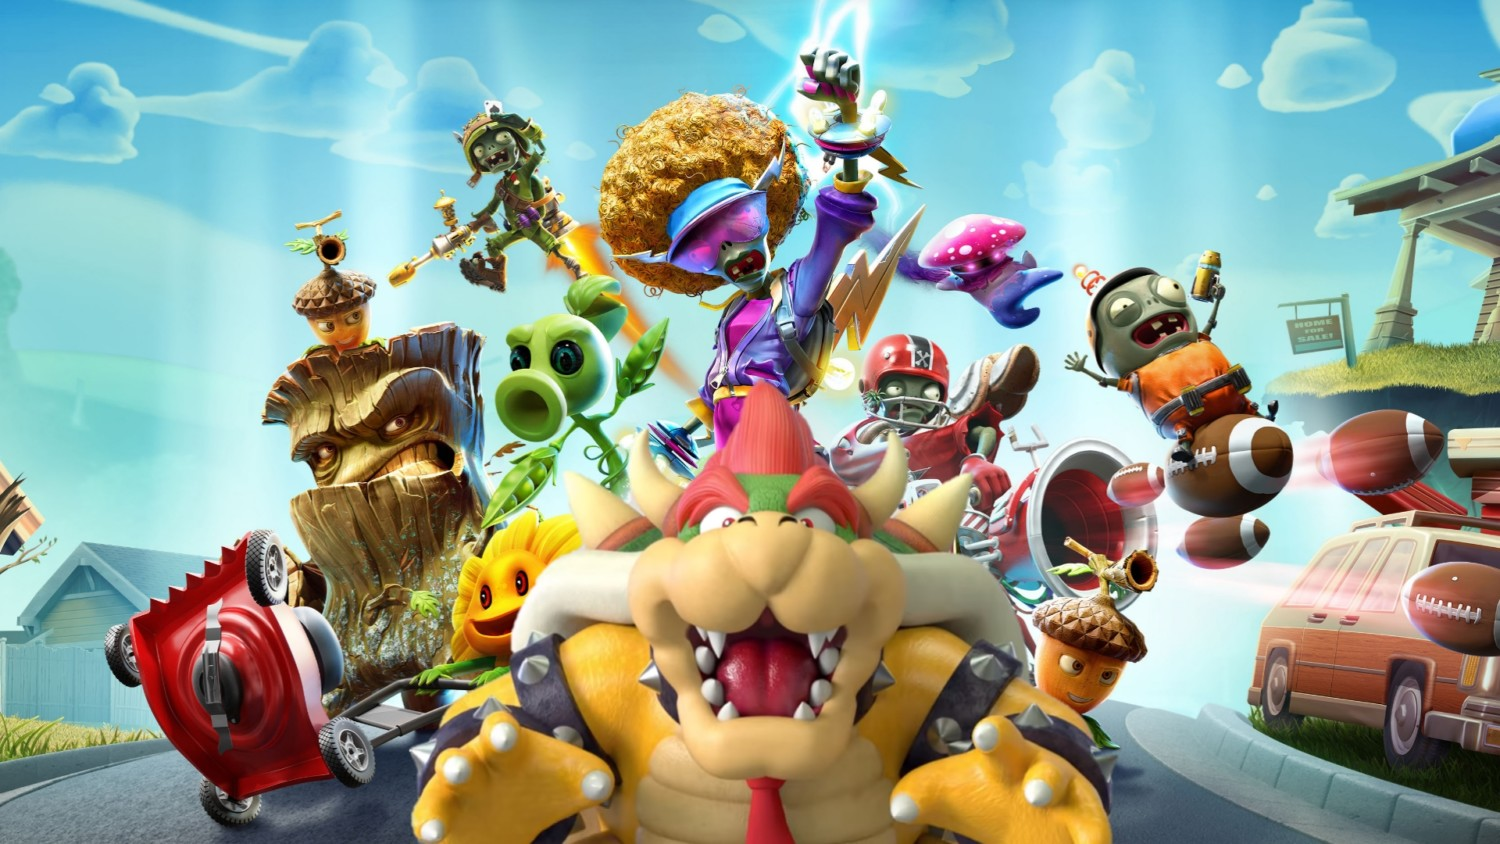 Bowser's Theme From New Super Mario Bros. Wii Sounds Similar To a Song In Plants Vs. Zombies: Battle For Neighborville